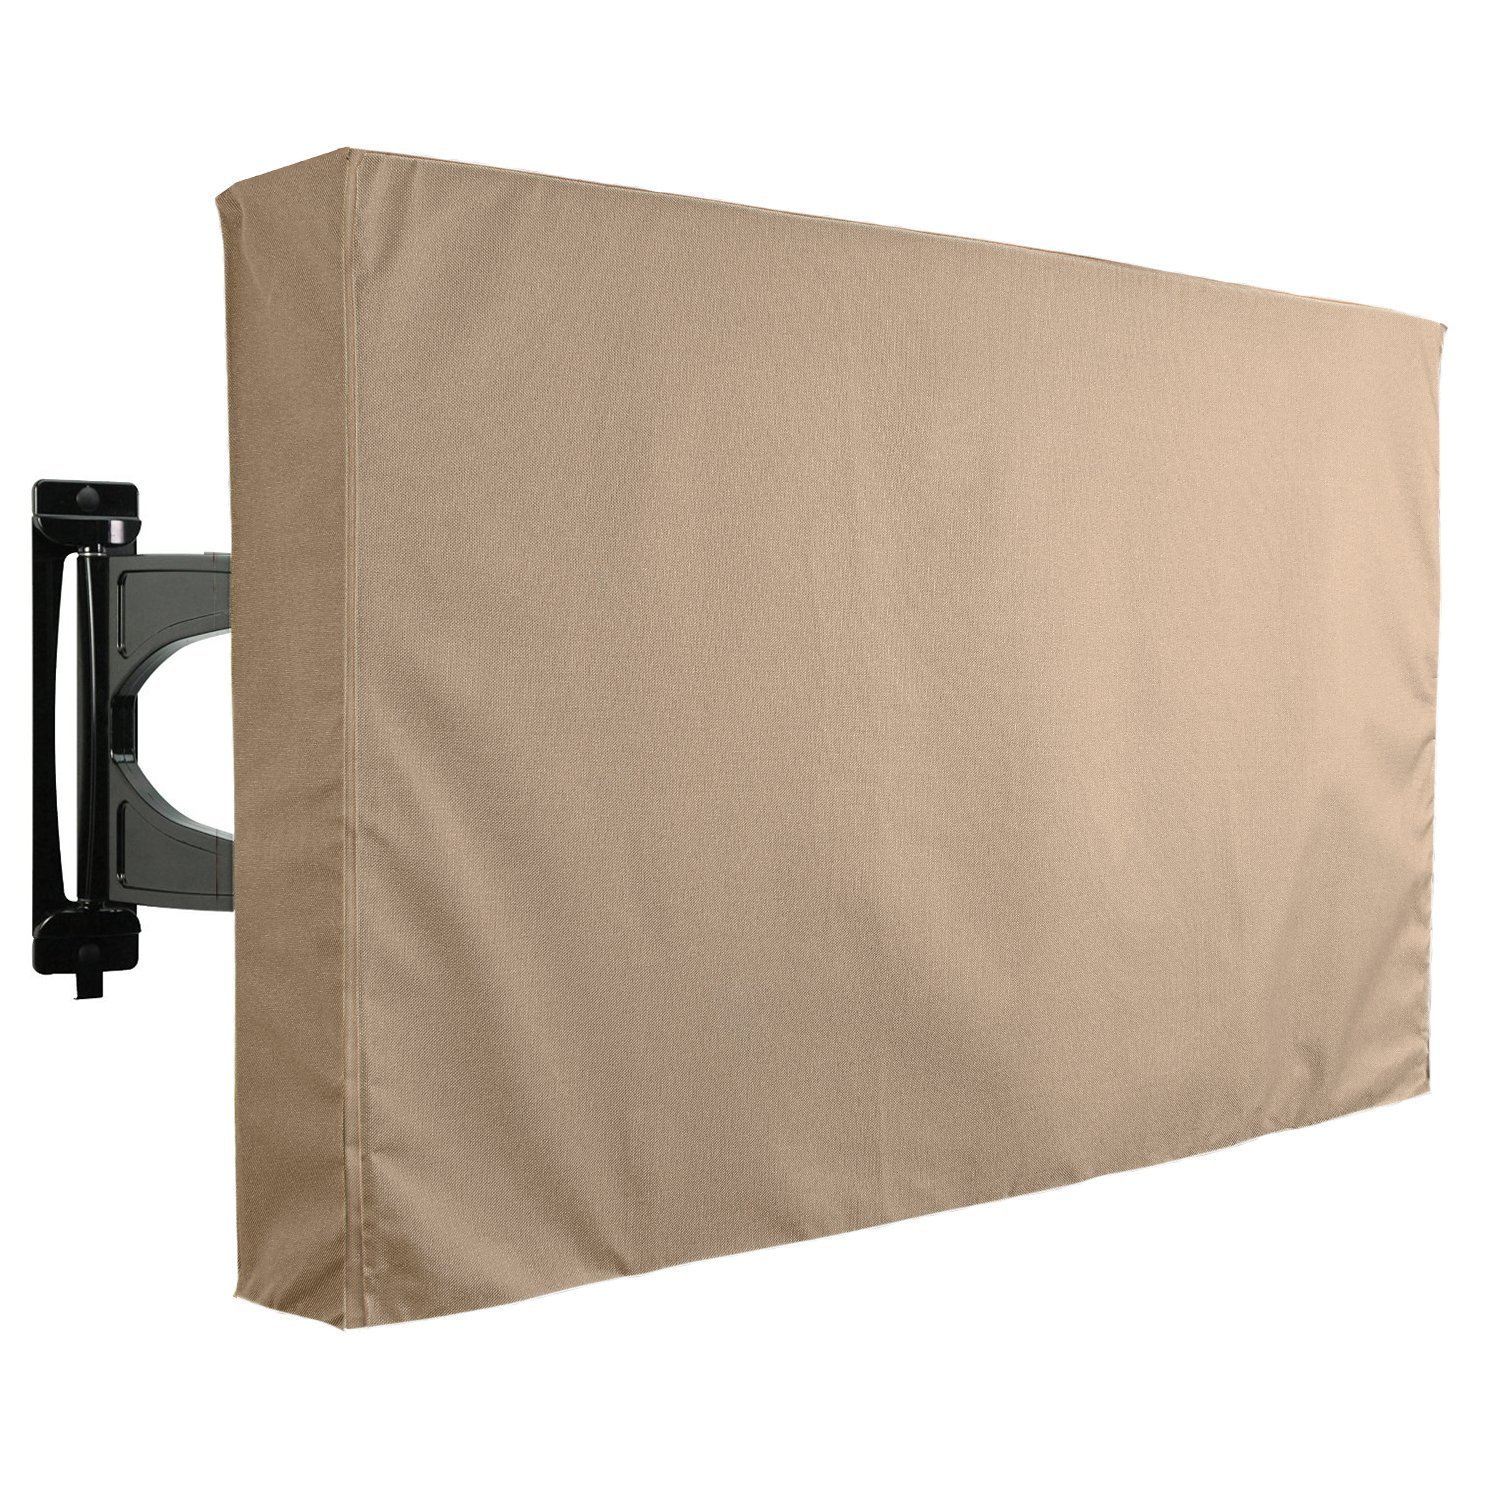 Outdoor TV Cover, Brown- Universal Weatherproof Protector for 65'' - 70'' TV - Fits Most Mounts & Brackets by KHOMO GEAR